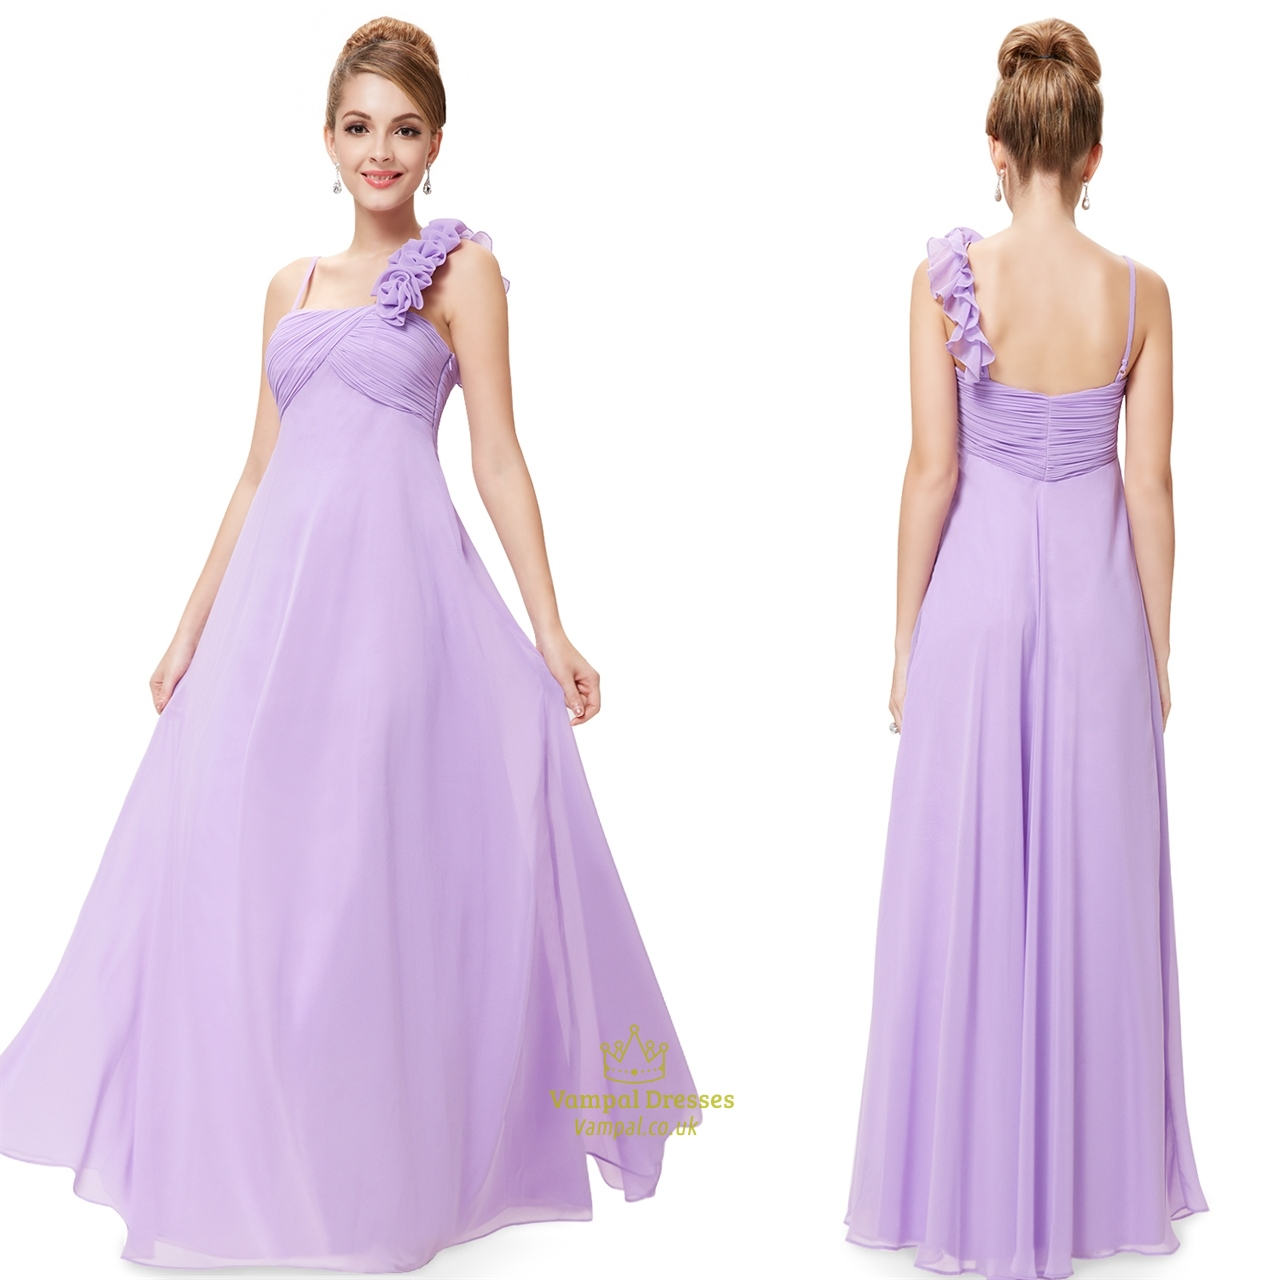 Lavender Chiffon One Shoulder Bridesmaid Dresses Long,One Shoulder ...